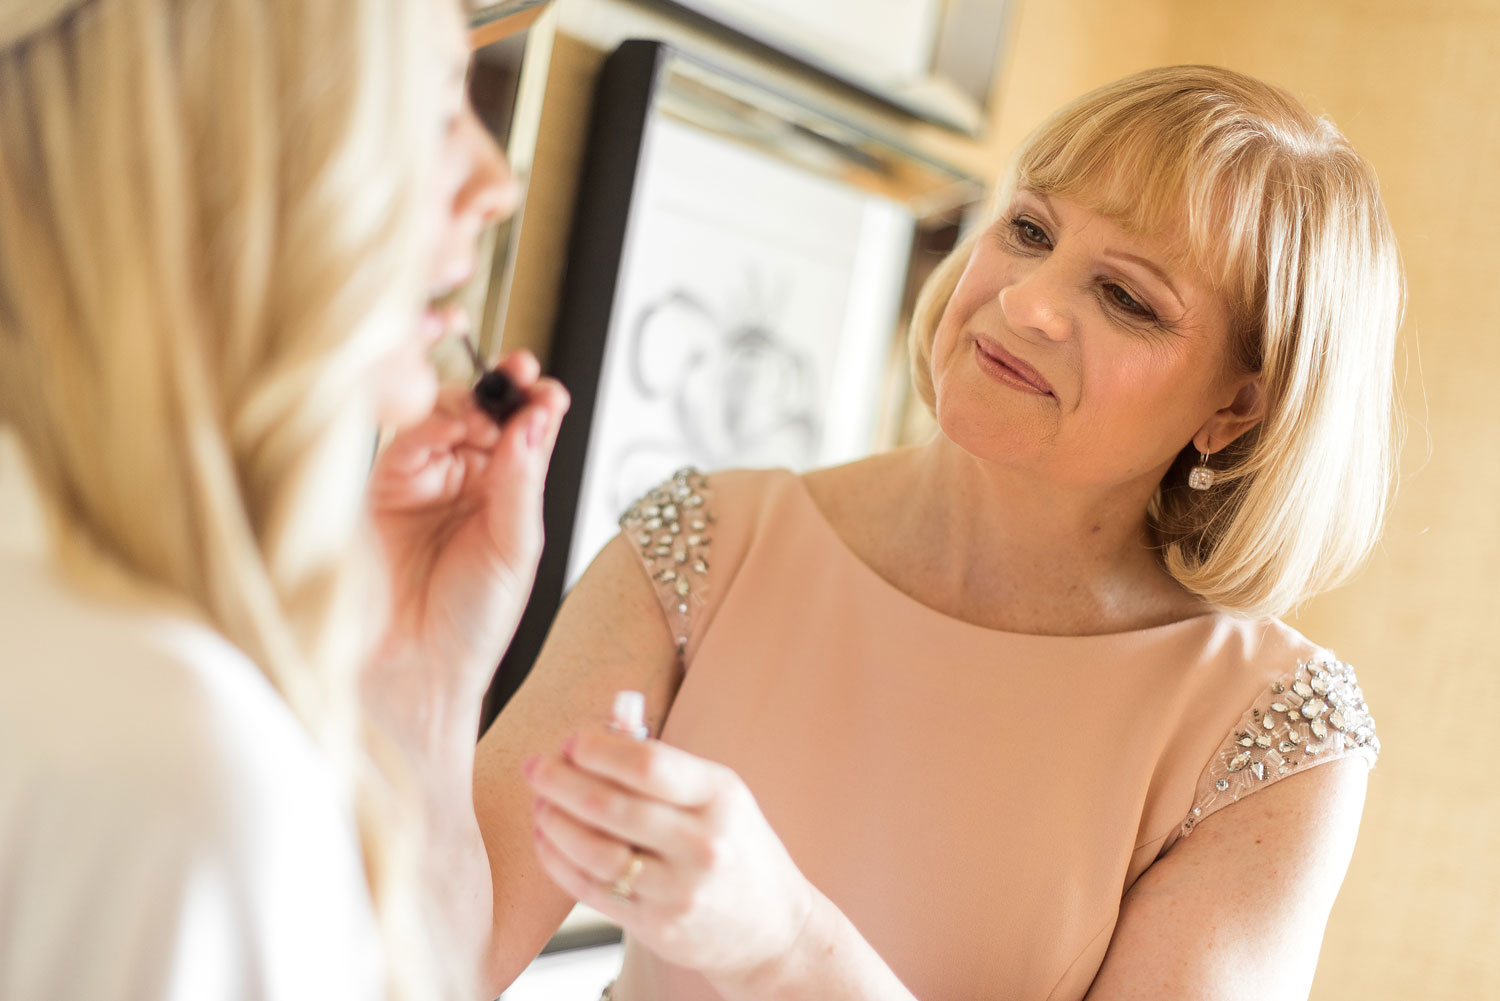 mother of the bride helping daughter with makeup while getting ready for wedding